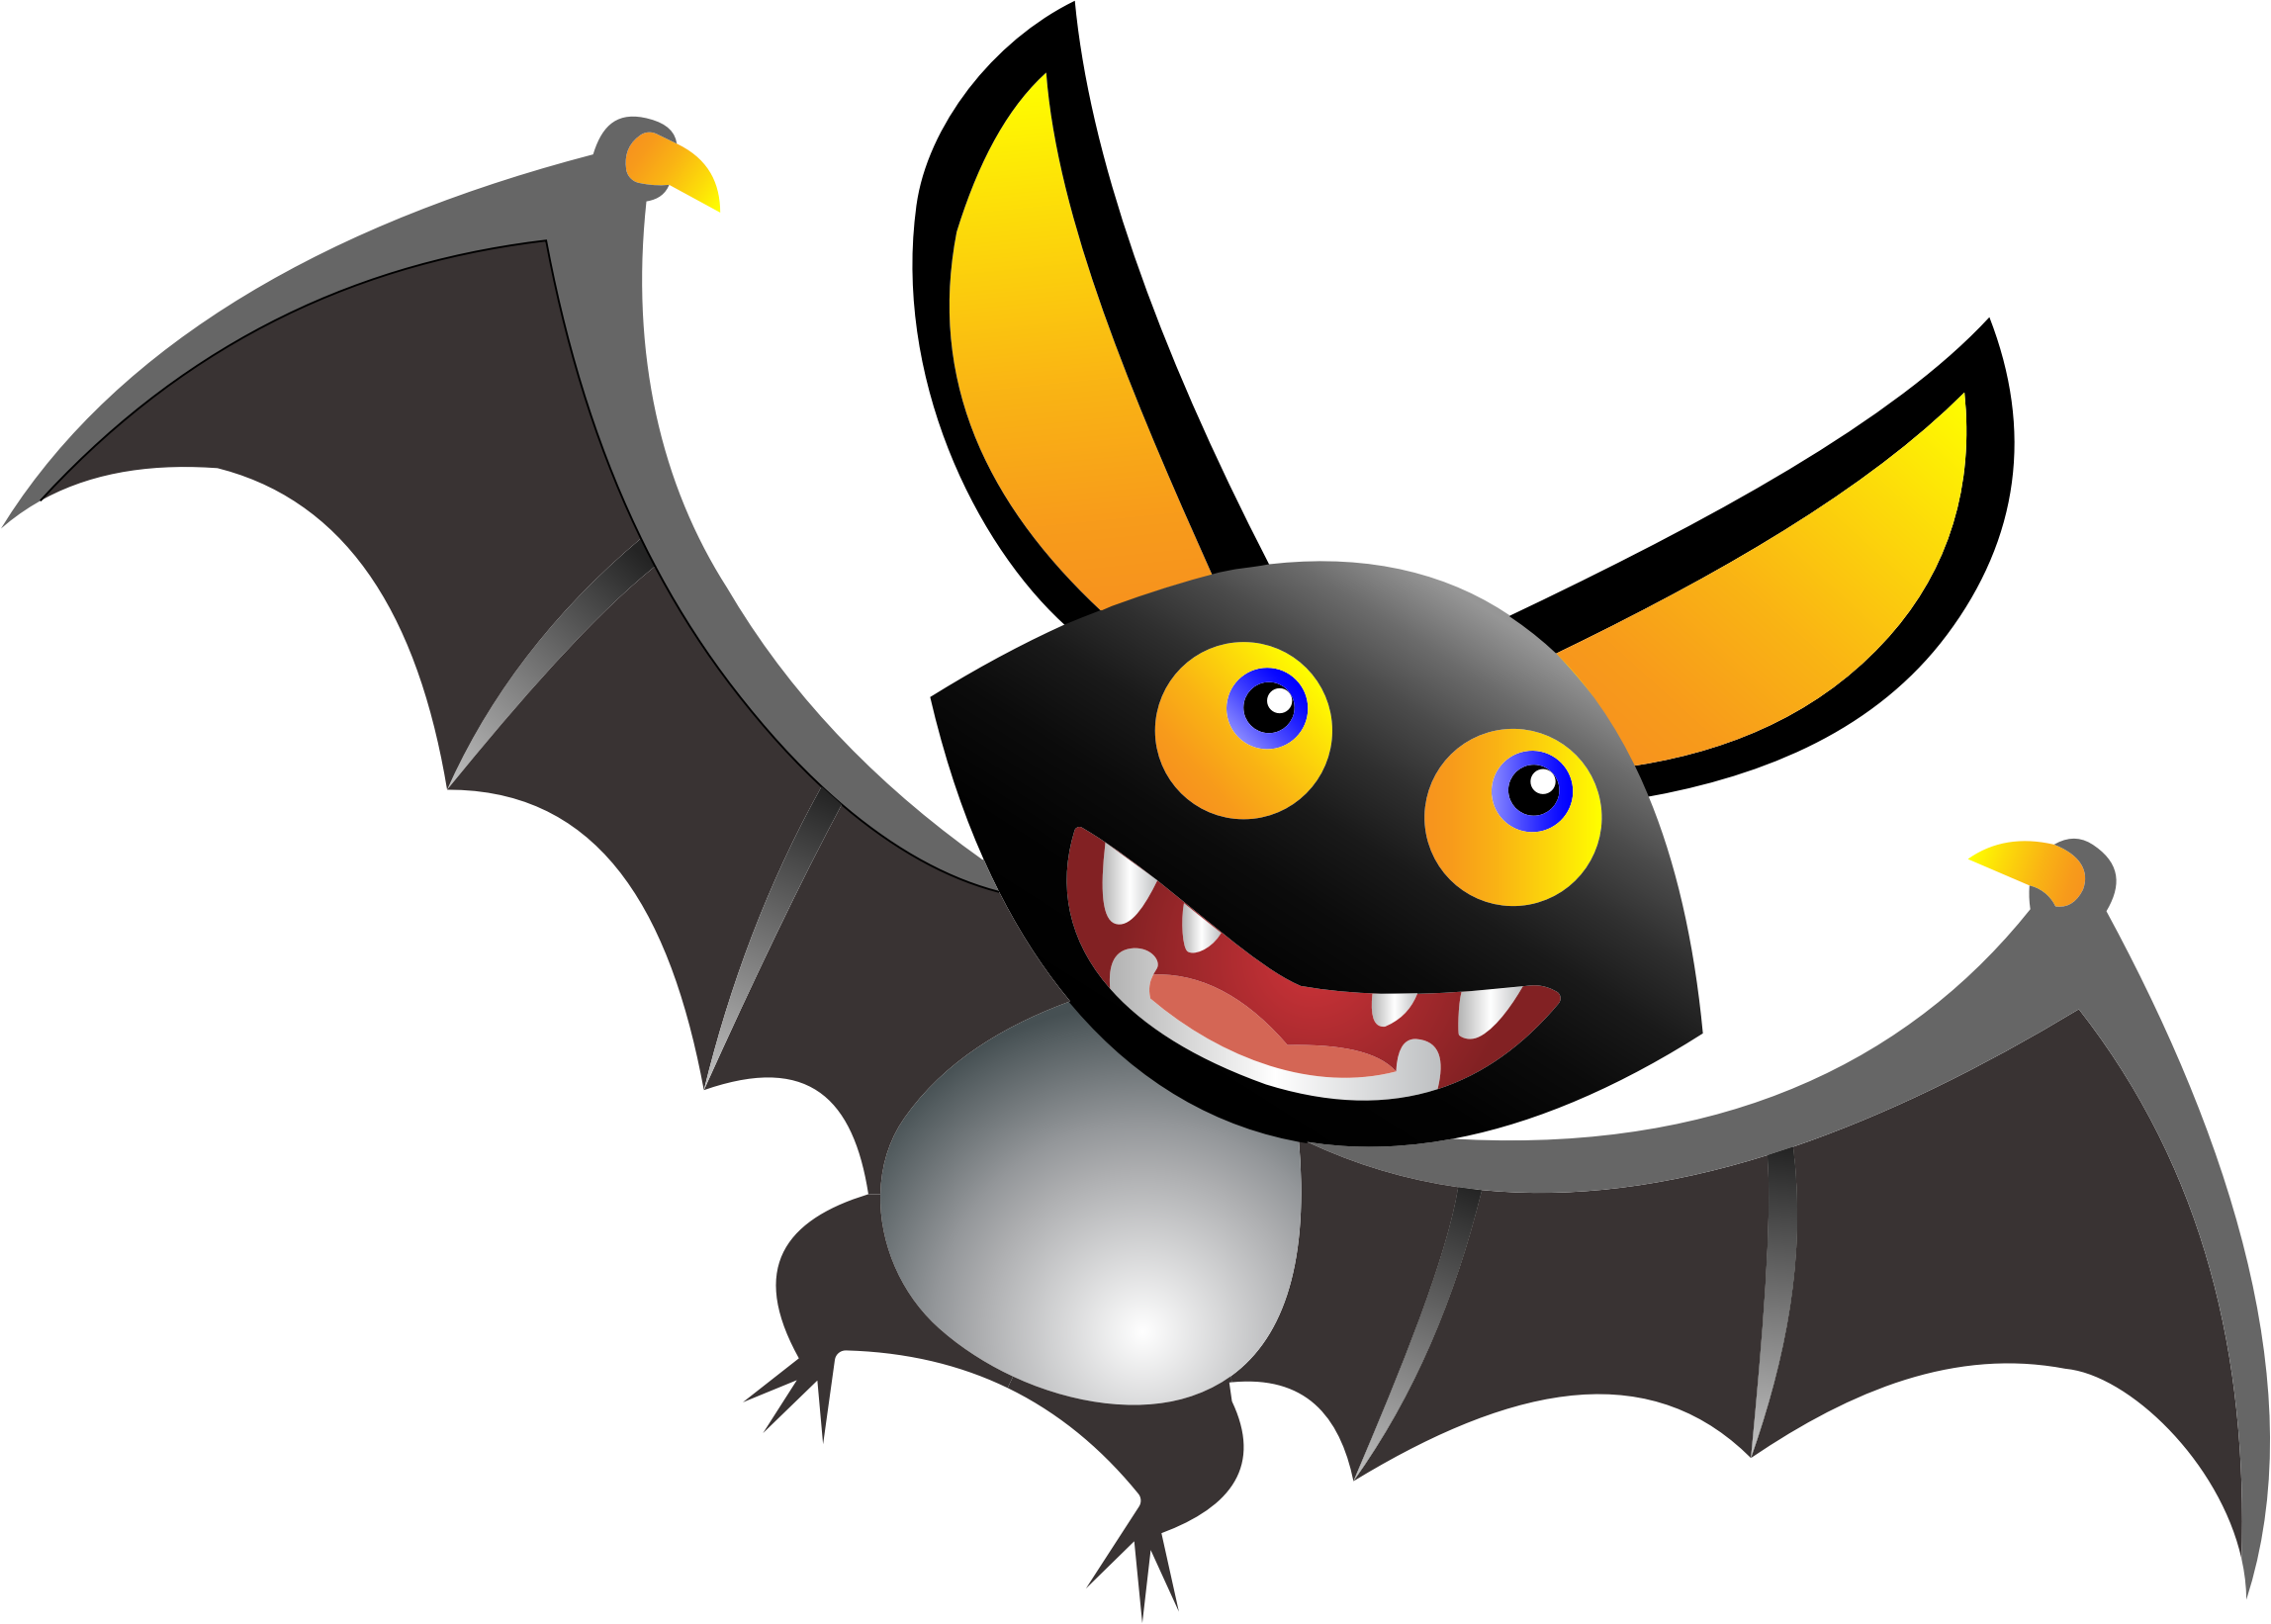 Free Cartoon Bat Cliparts, Download Free Clip Art, Free Clip Art on.